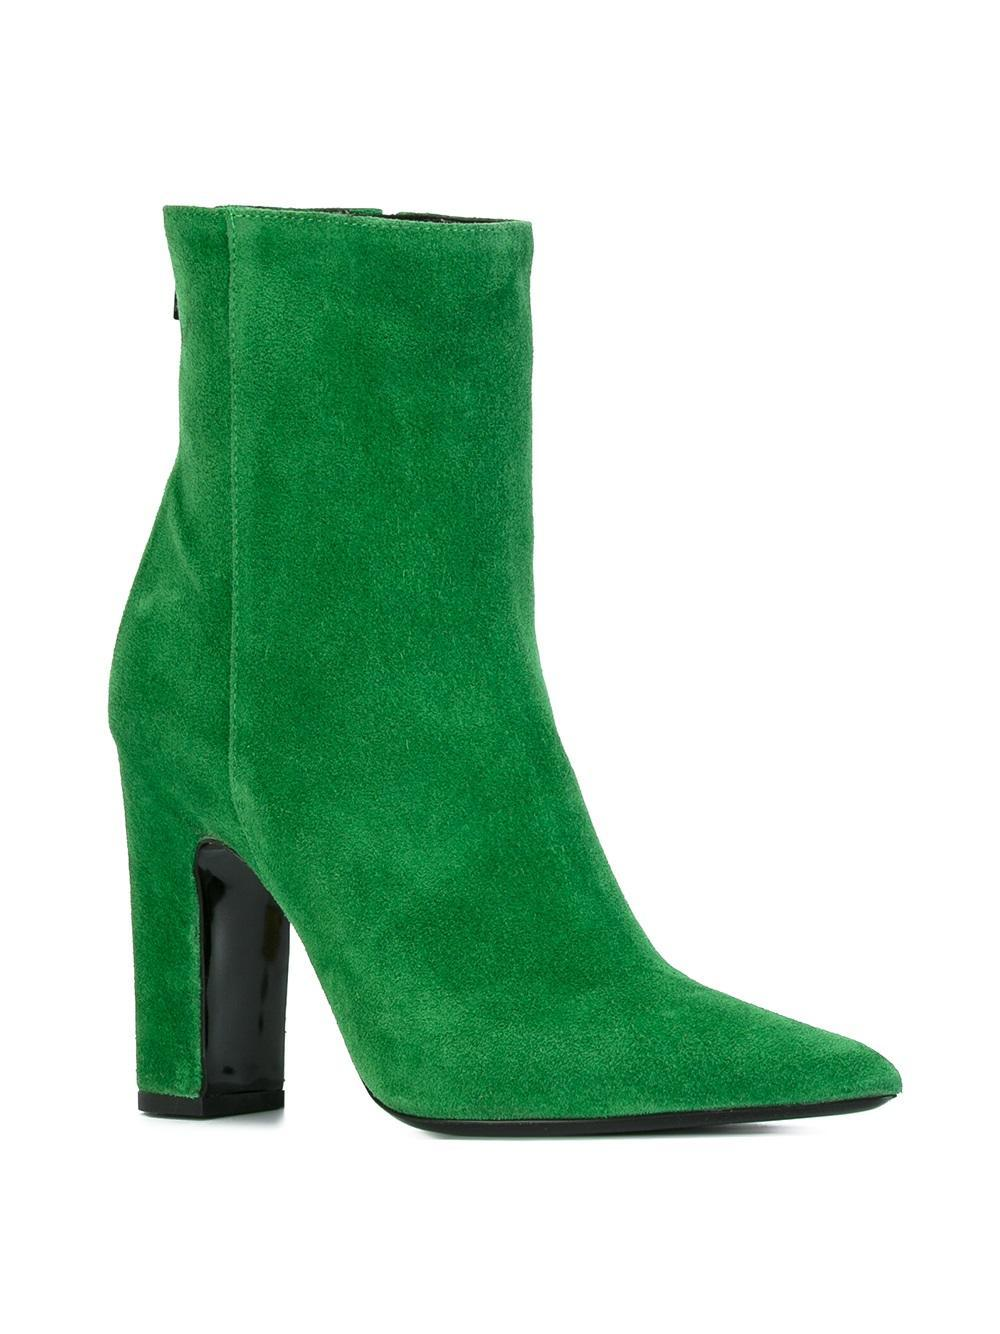 Barbara Bui Suede Ankle Boots in Green